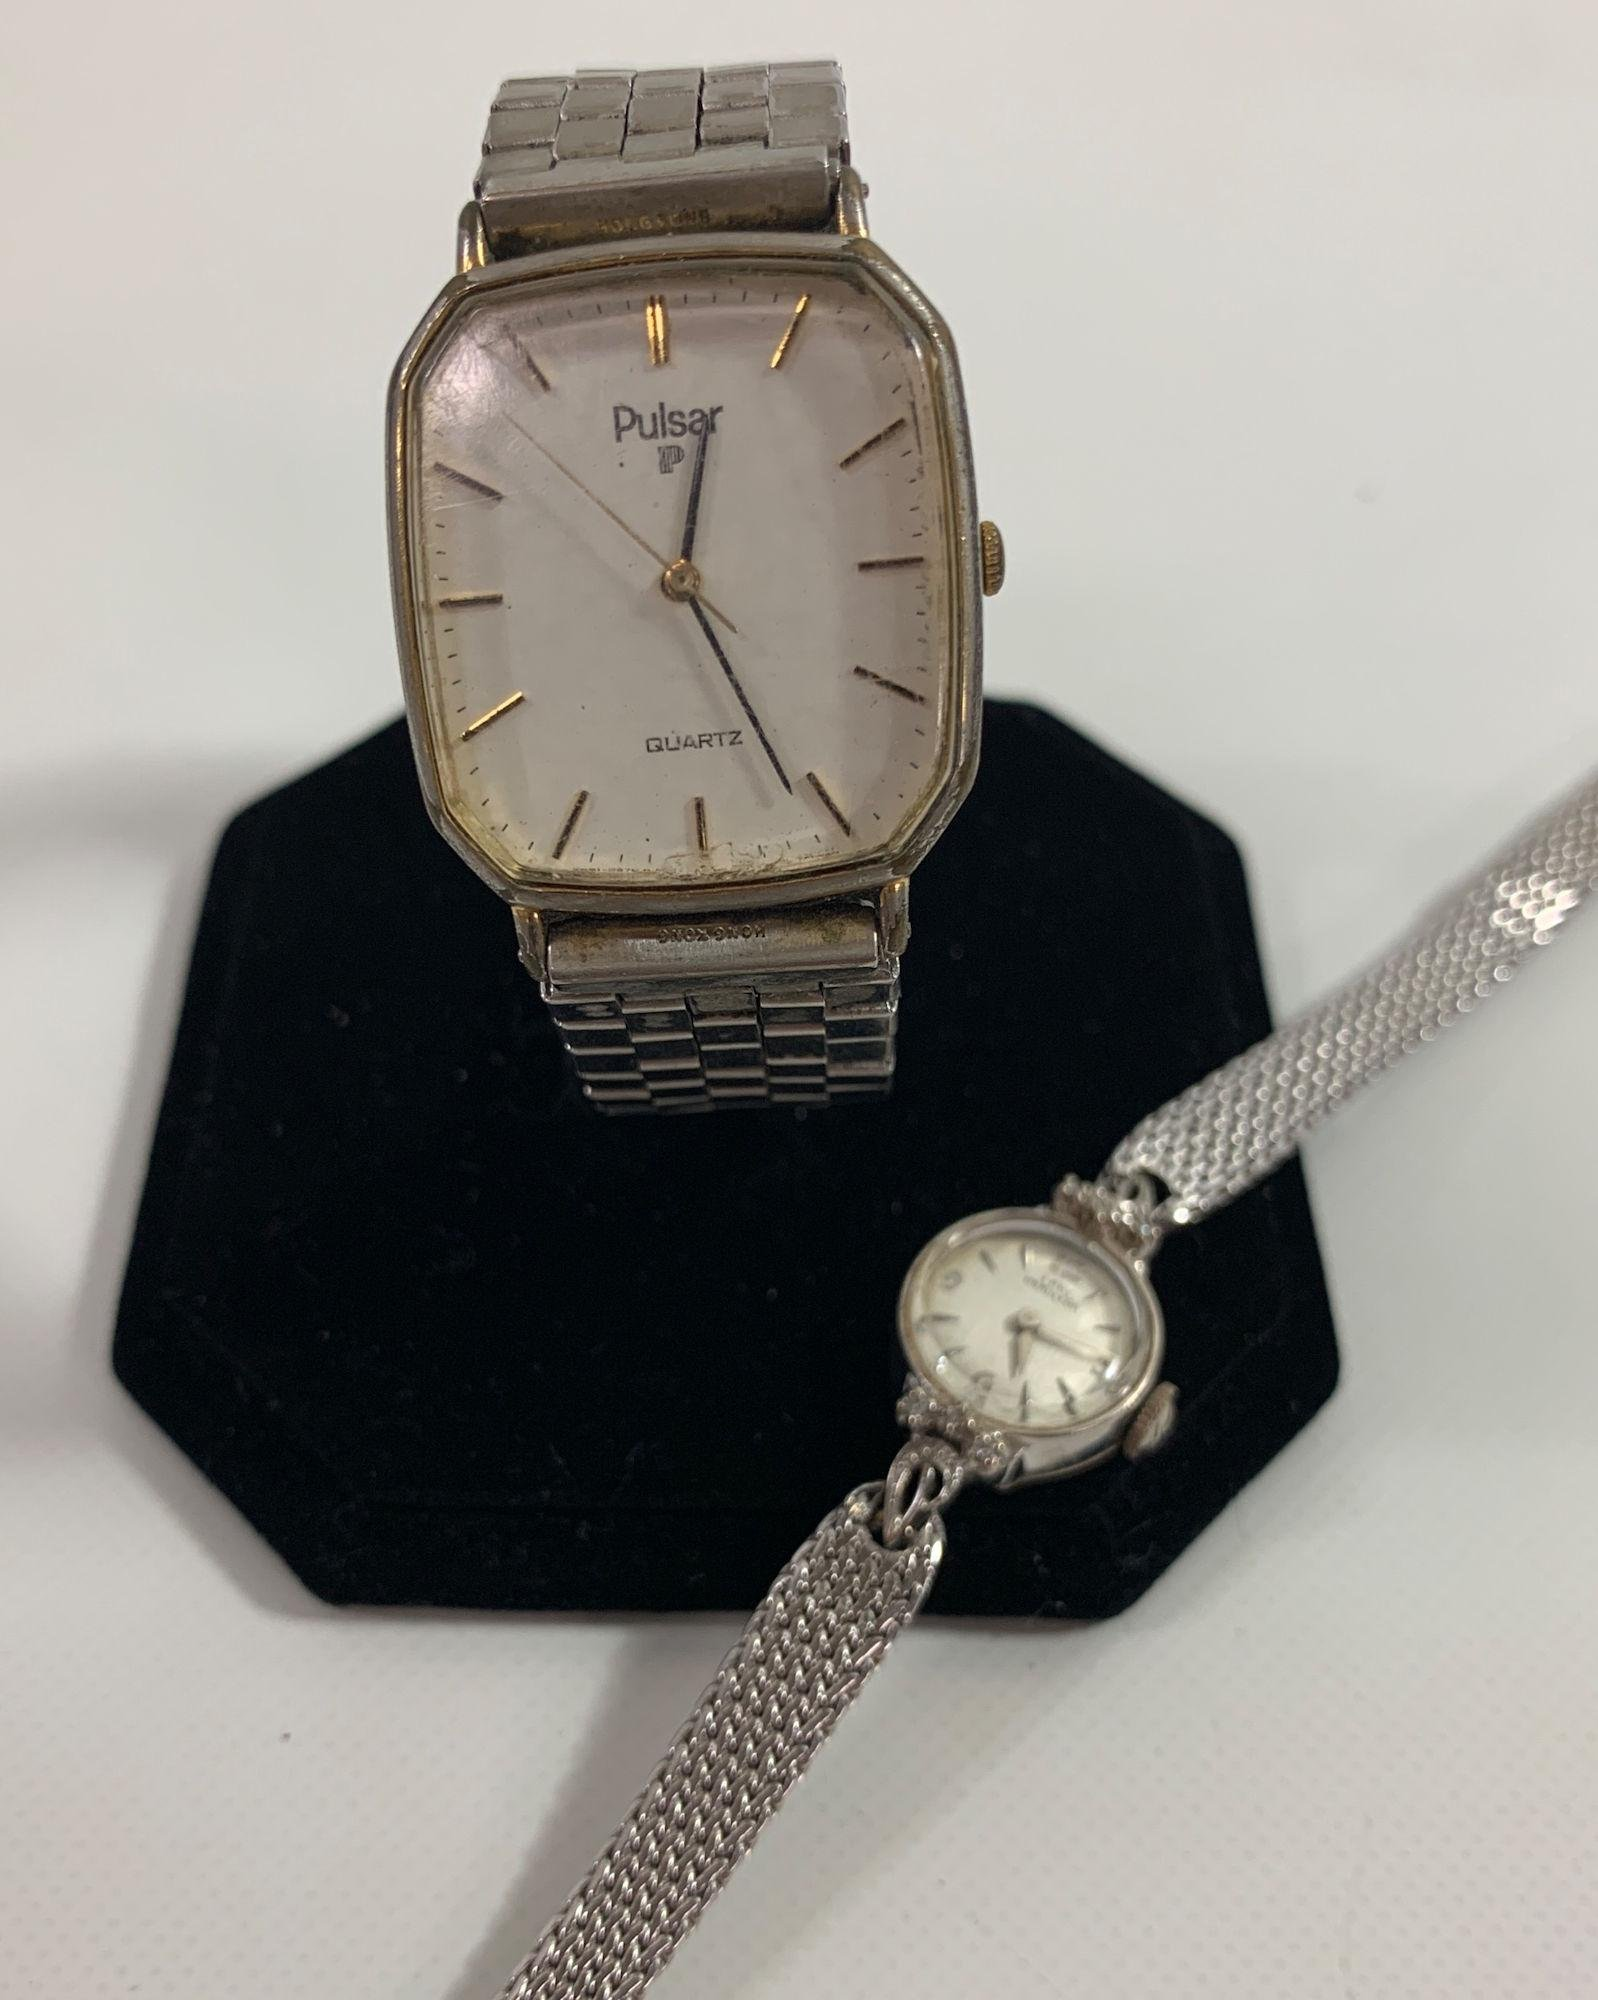 TWO SILVER TONE WRIST WATCHES